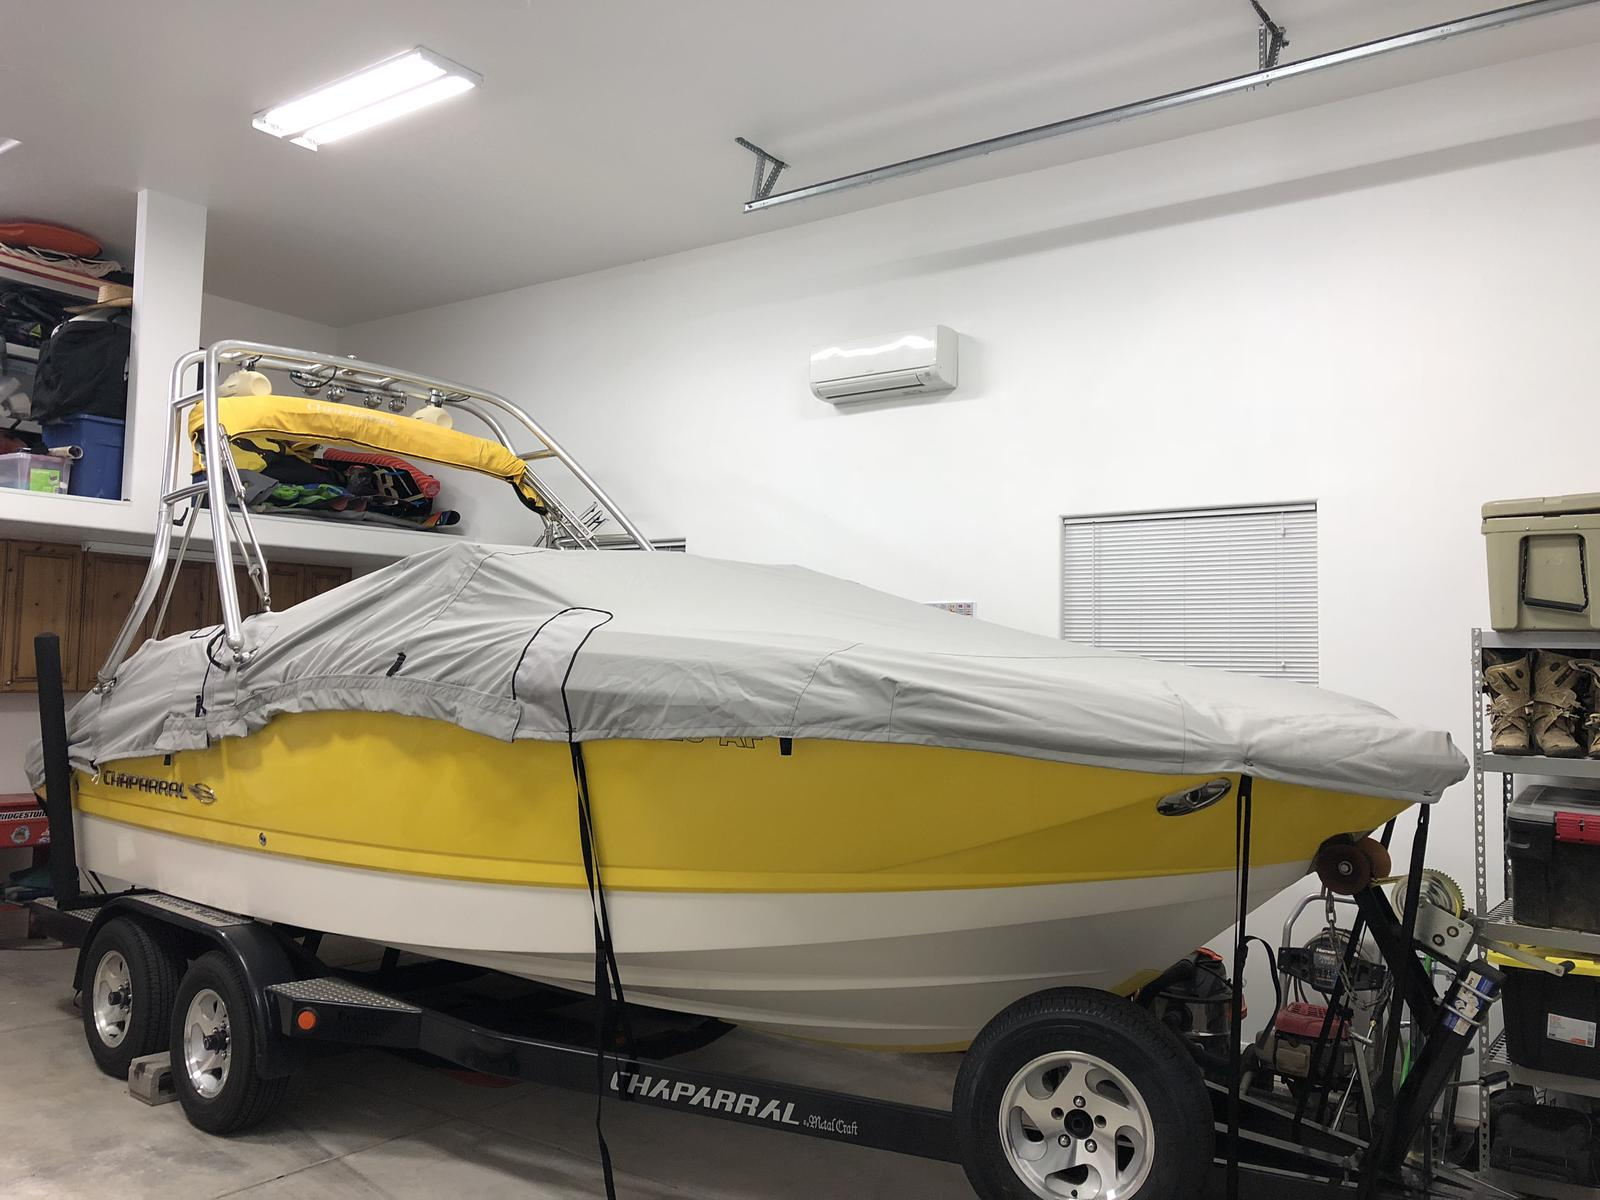 Inventory from Chaparral and Four Winns Rockingham Marine